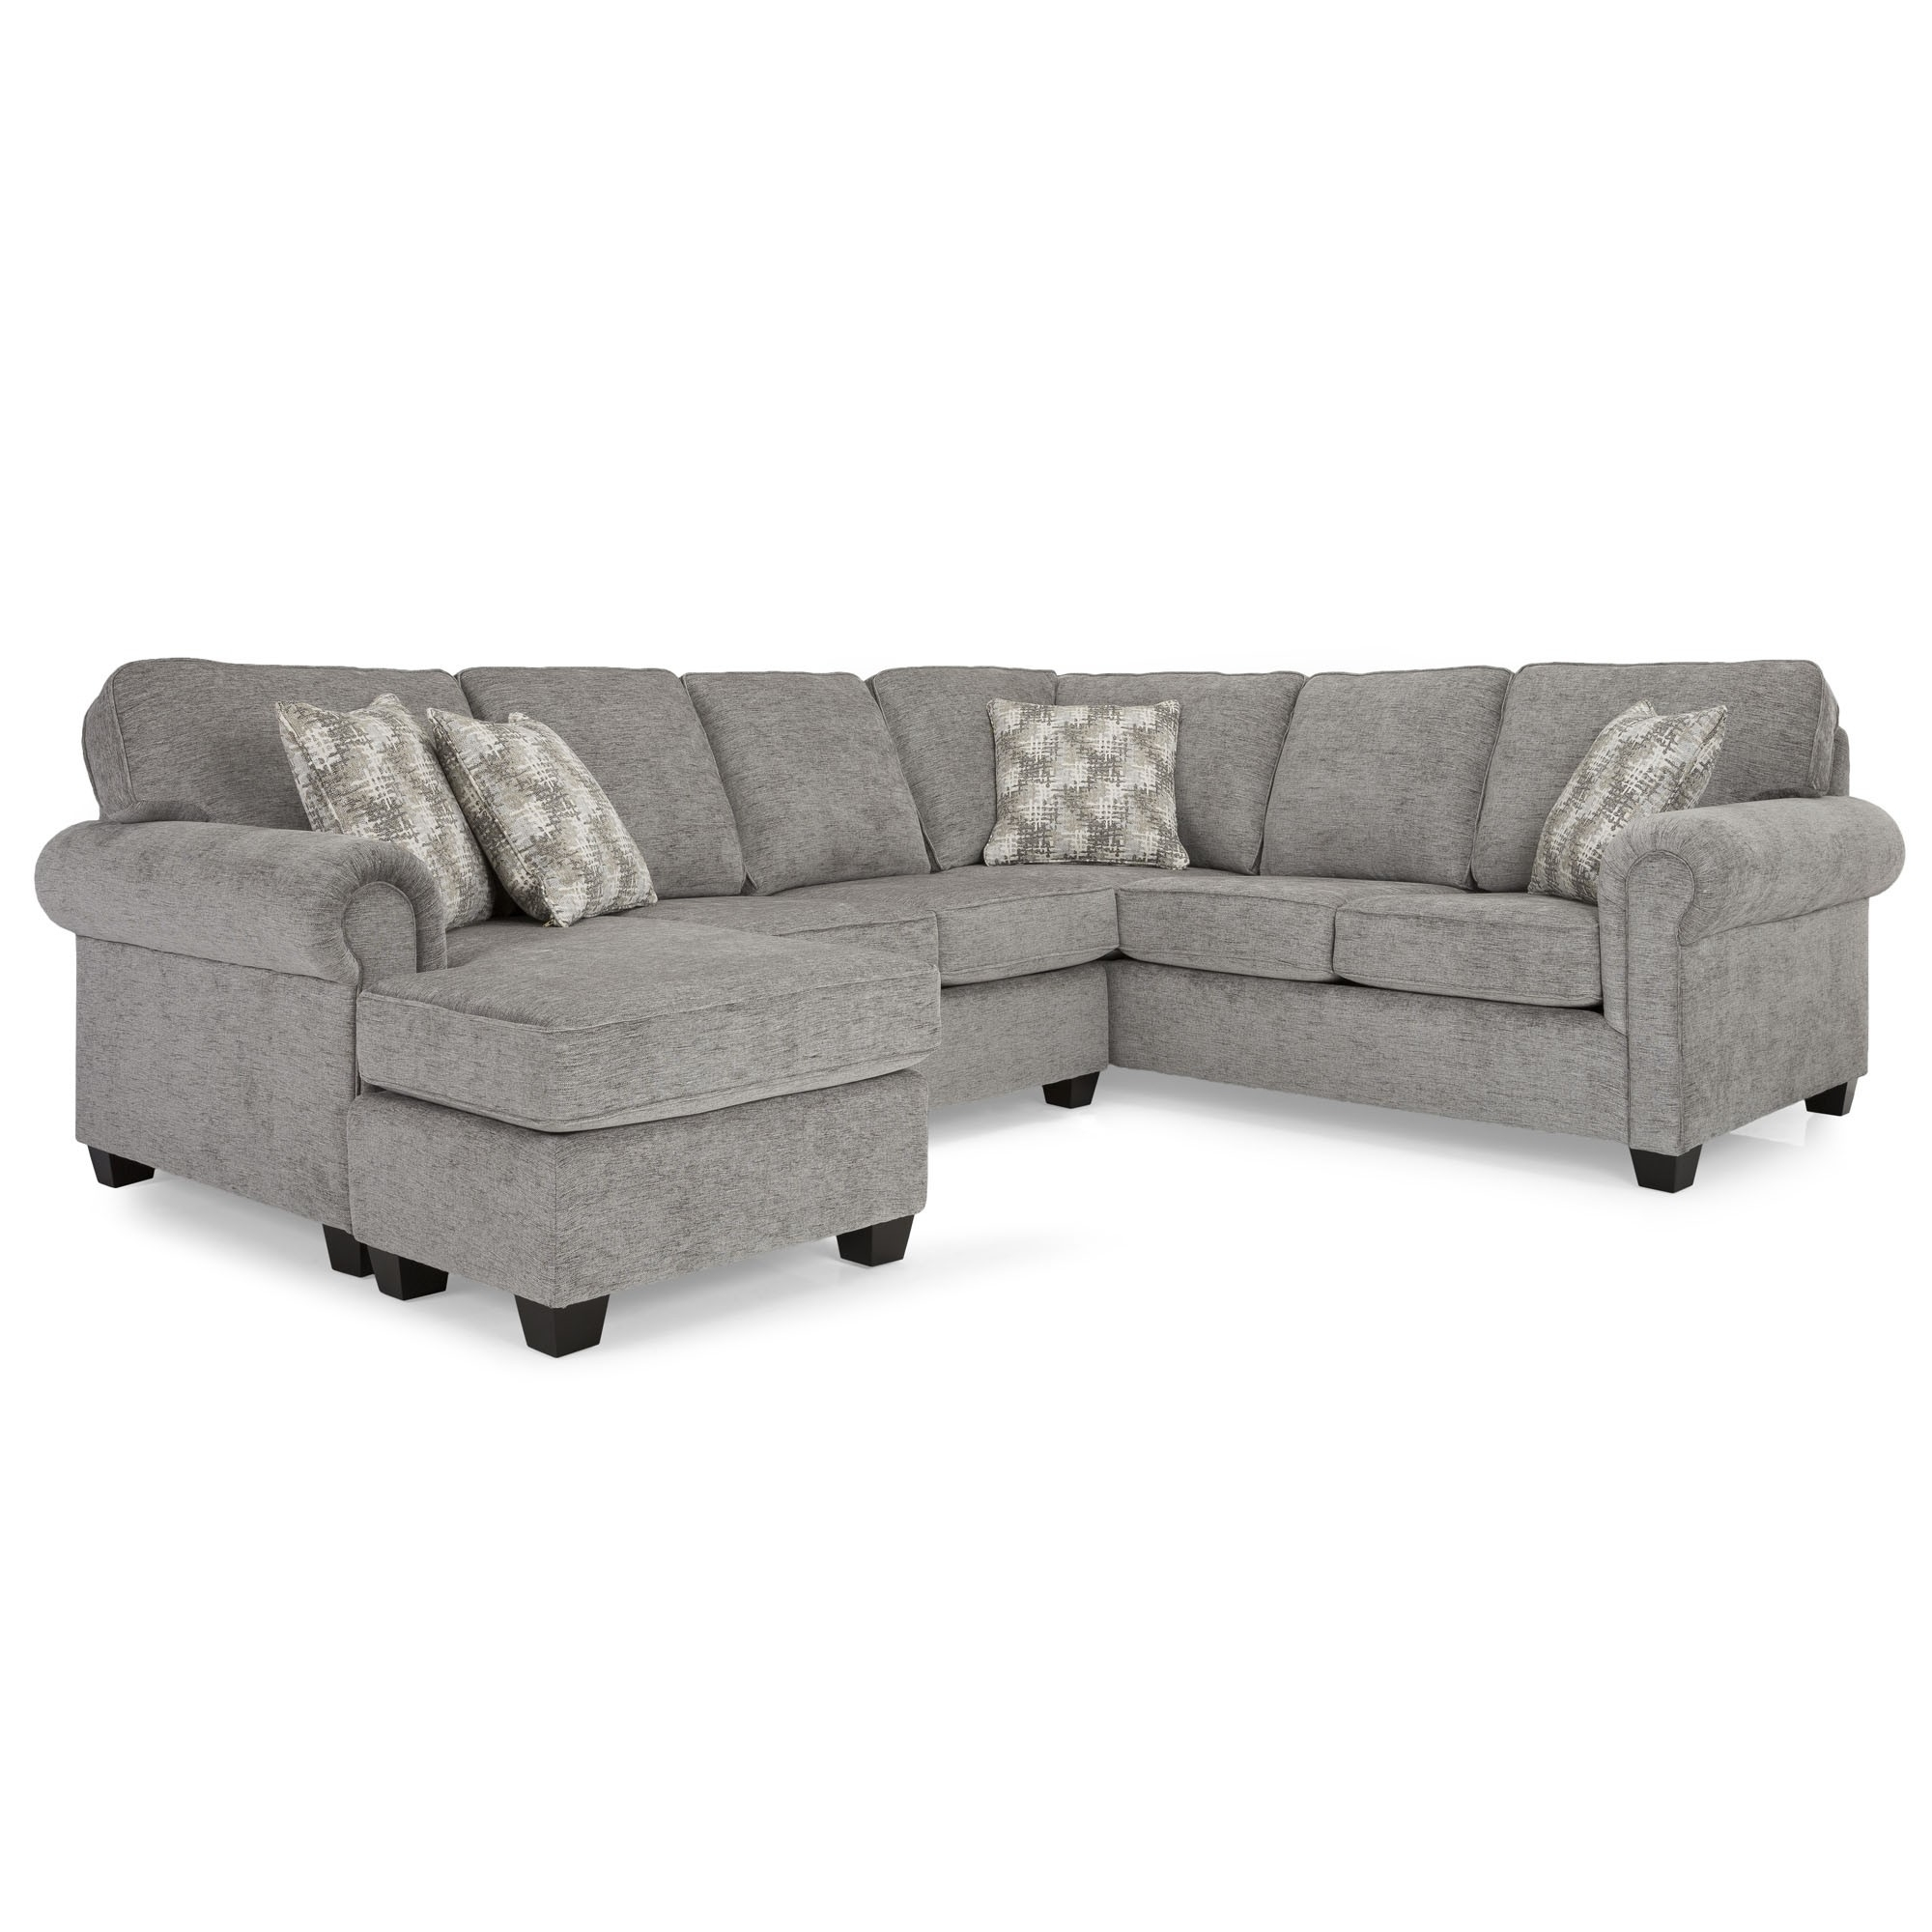 Andrews 3 Piece Sectional (View 2 of 20)